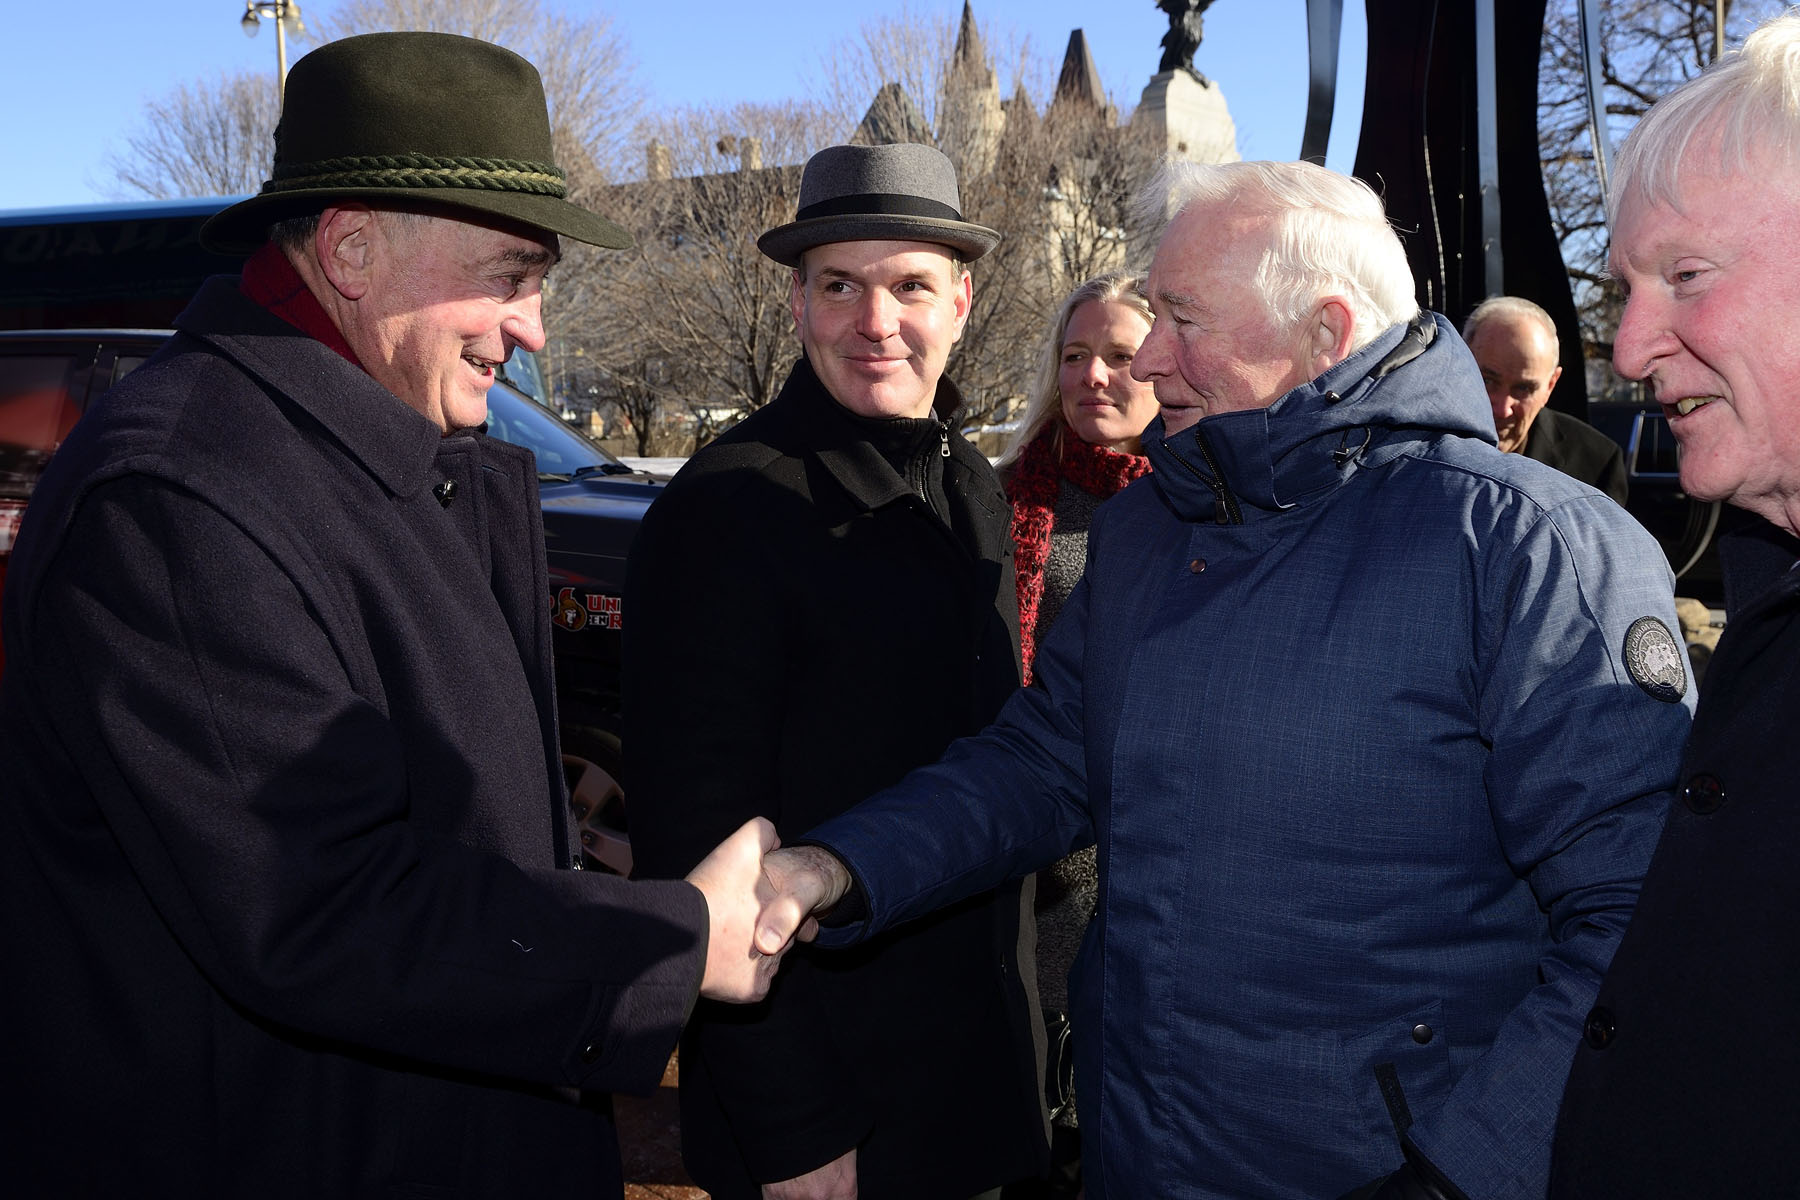 As patron of  the Lord Stanley's Gift Monument, His Excellency the Right Honourable David Johnston, Governor General of Canada, attended the monument's groundbreaking ceremony at the corner of Elgin and Sparks streets, in Ottawa, on March 18, 2017. Upon arrival, he was greeted by NHL almuni Frank Maholvich and representatives from the Lord Stanley Memorial Monument Inc.